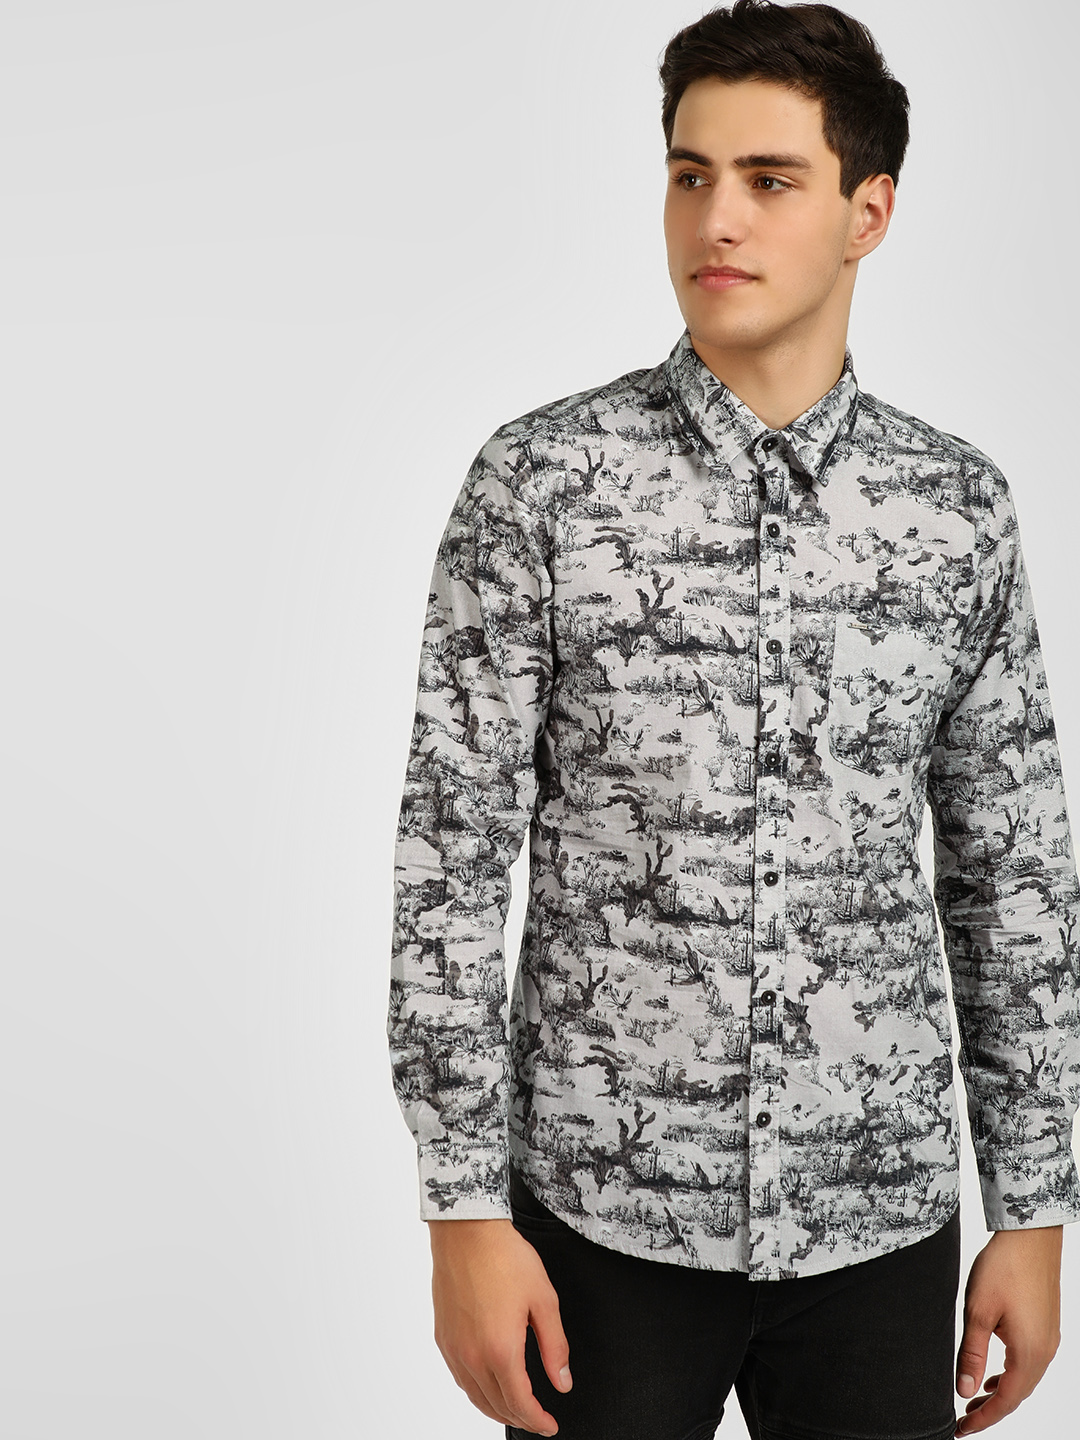 Lee Cooper White Floral Print Casual Shirt 1